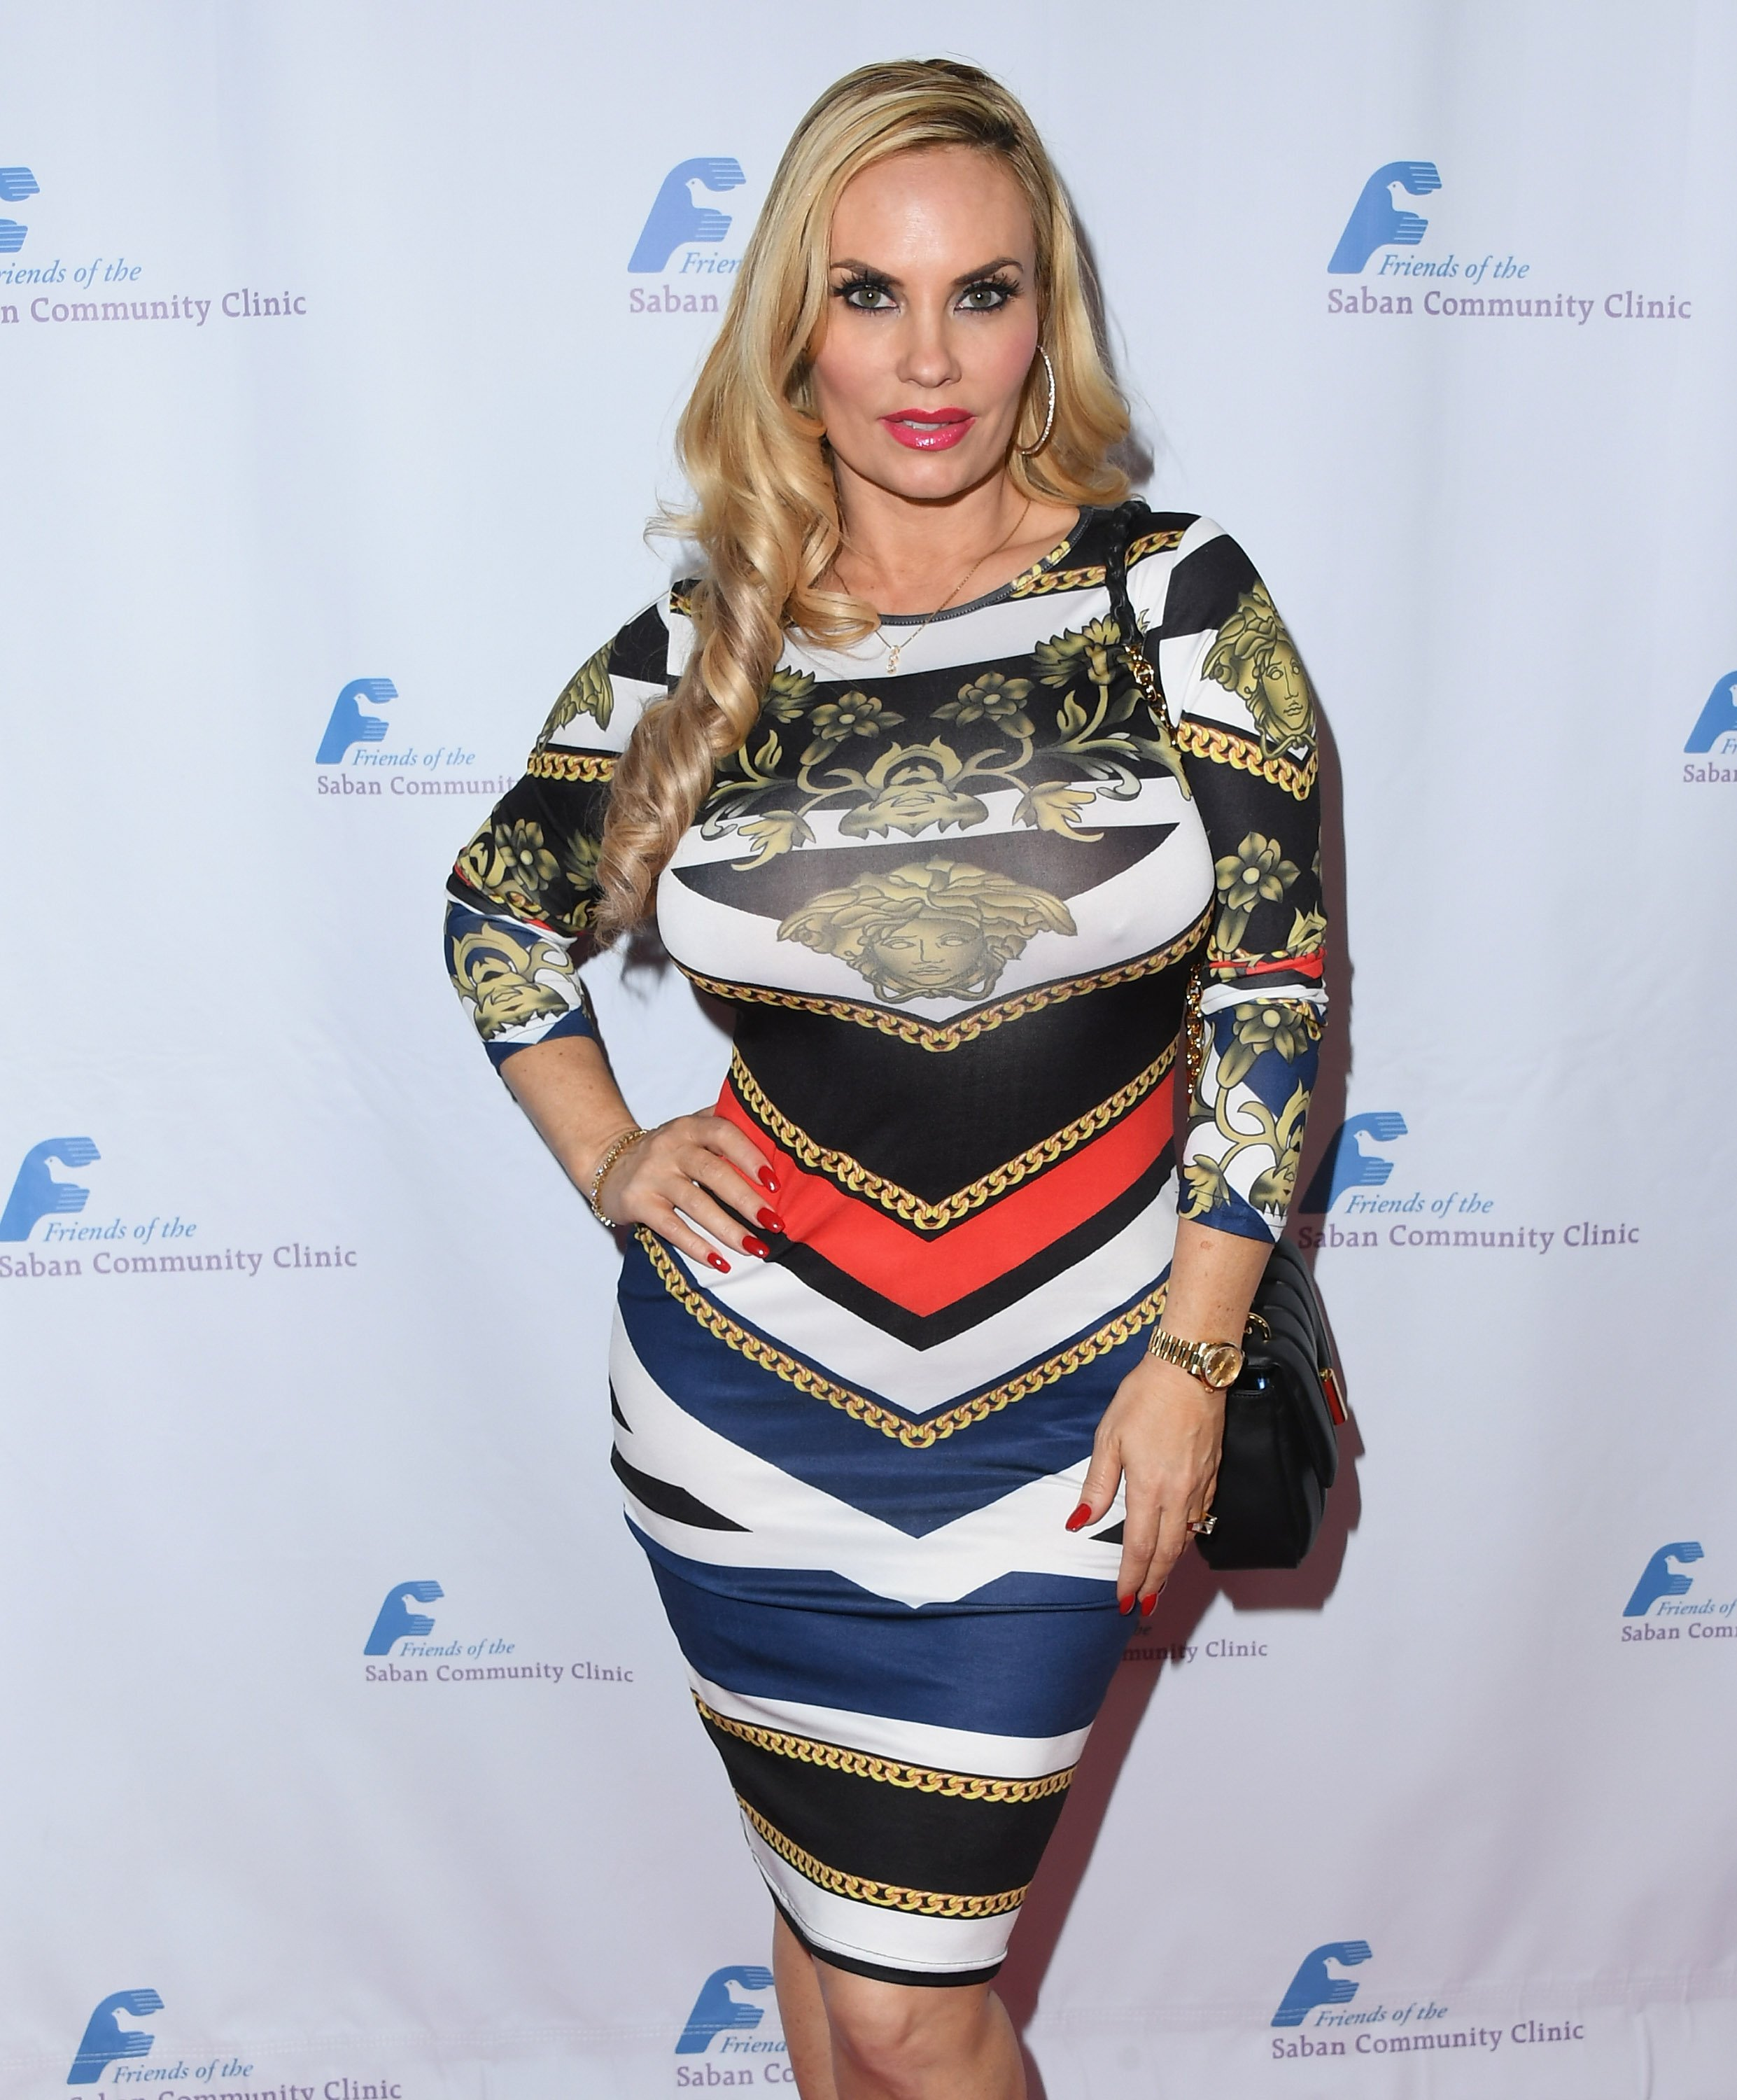 Coco Austin attends the Friends Of The Saban Community Clinic's 42nd Annual Gala at on November 12, 2018, in Beverly Hills, California. | Source: Getty Images